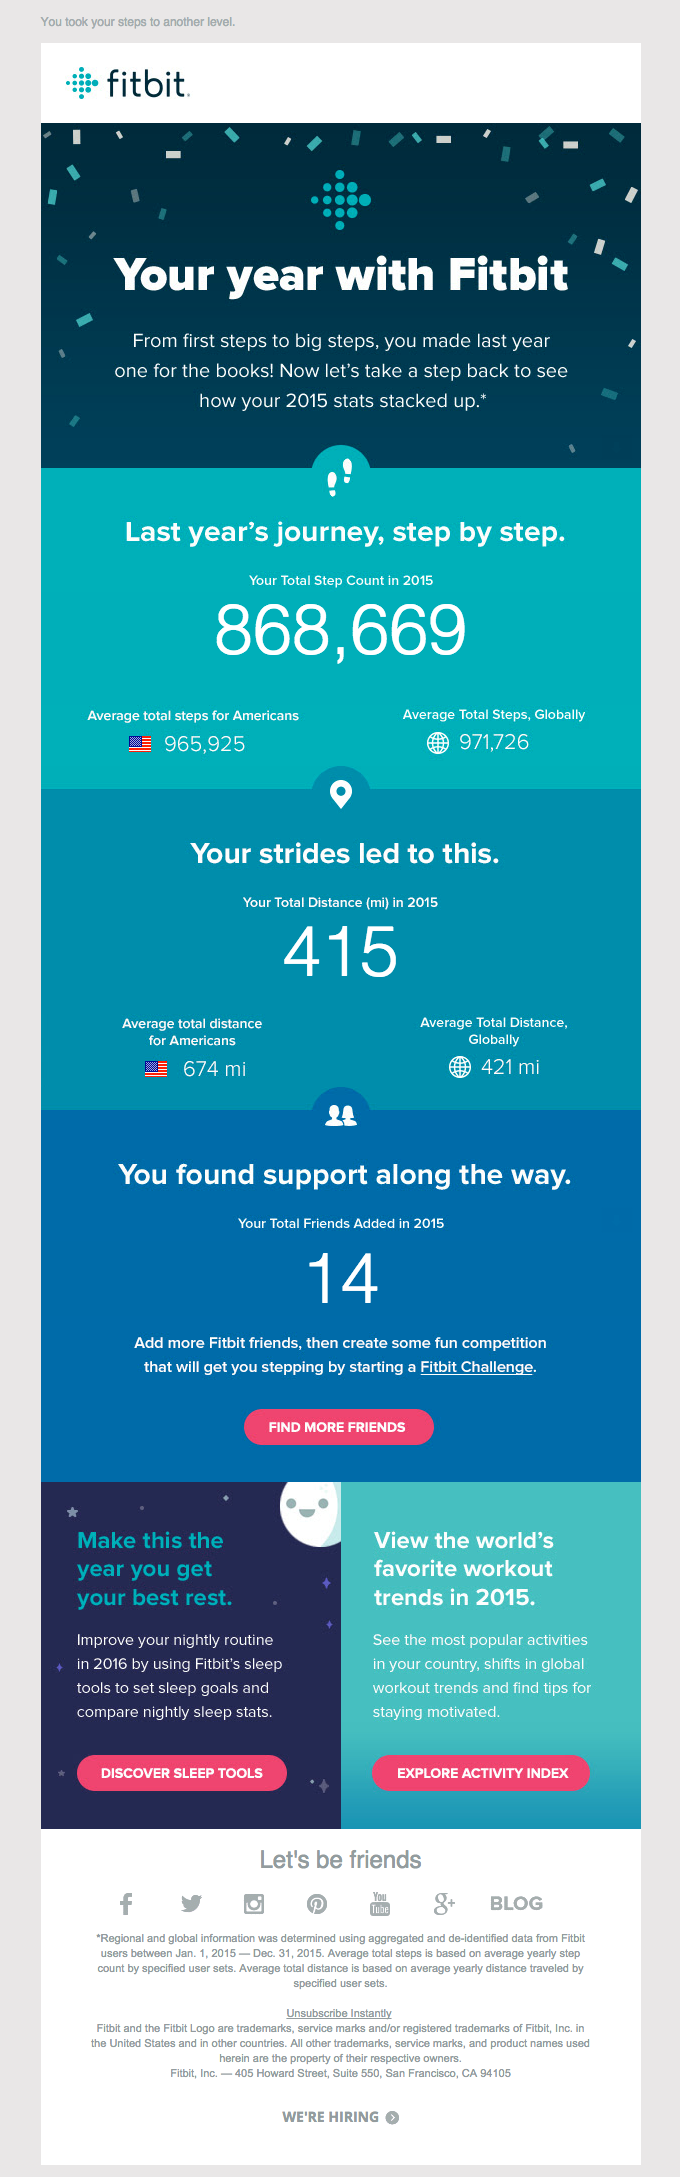 Fitbit Emails on Really Good Emails